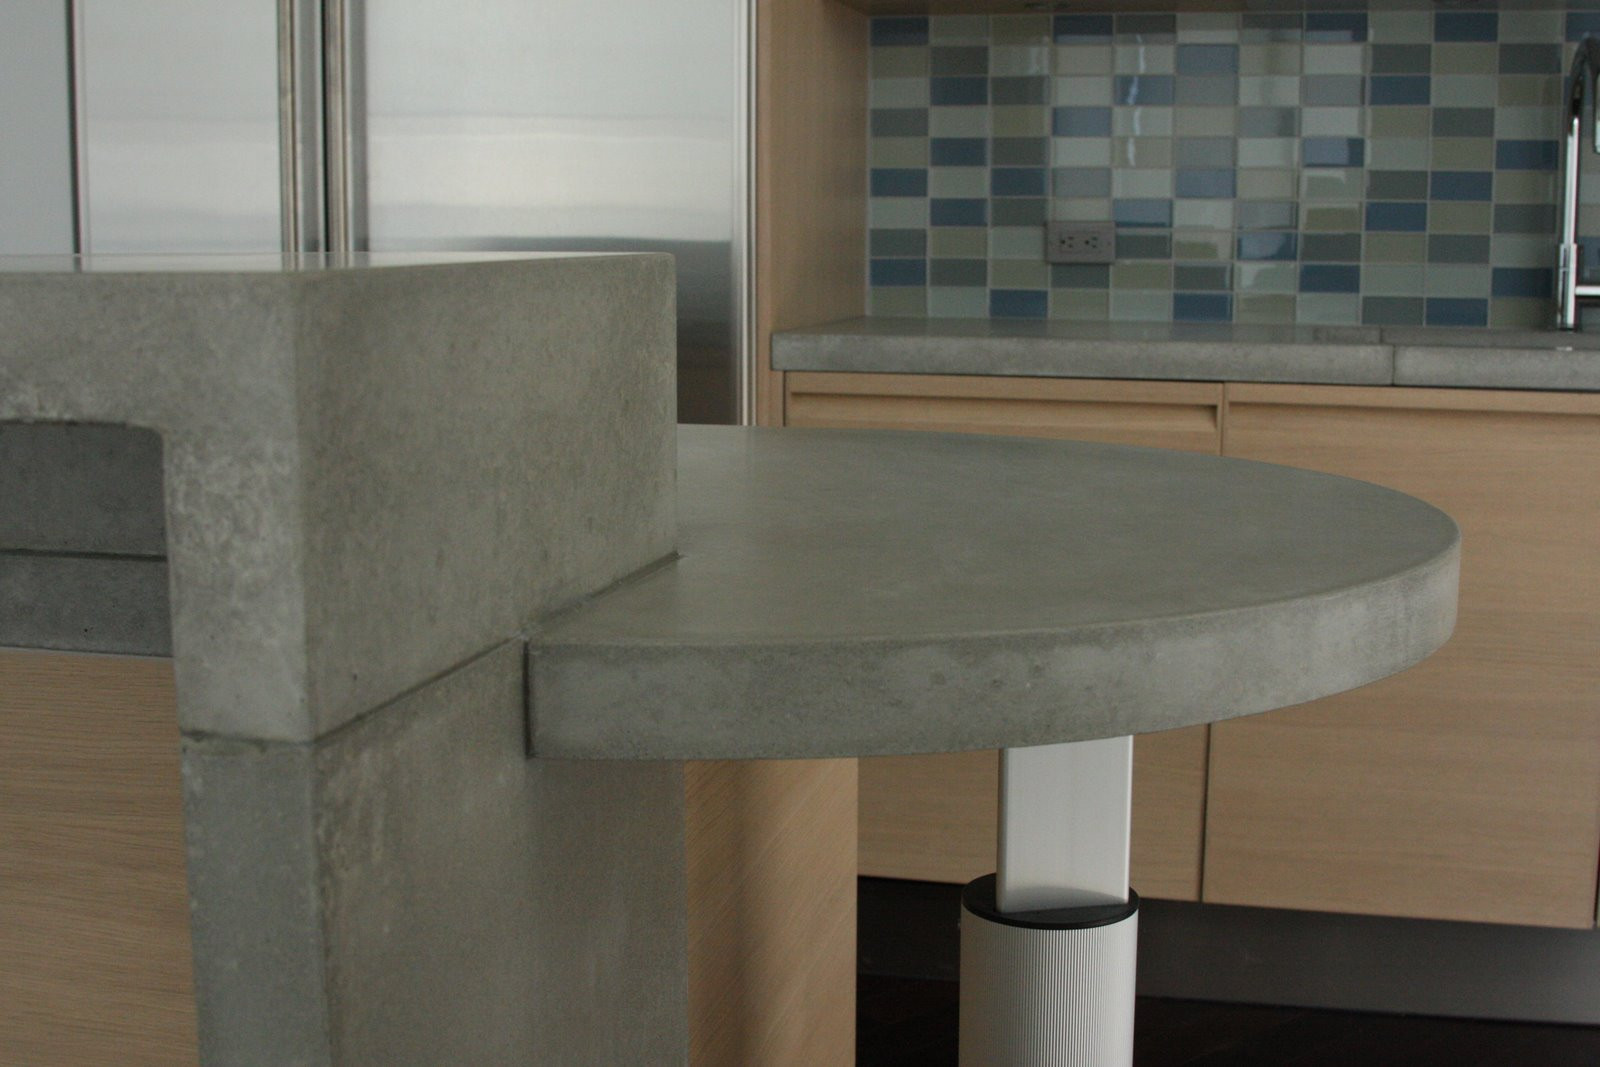 Polsihed concrete countertops